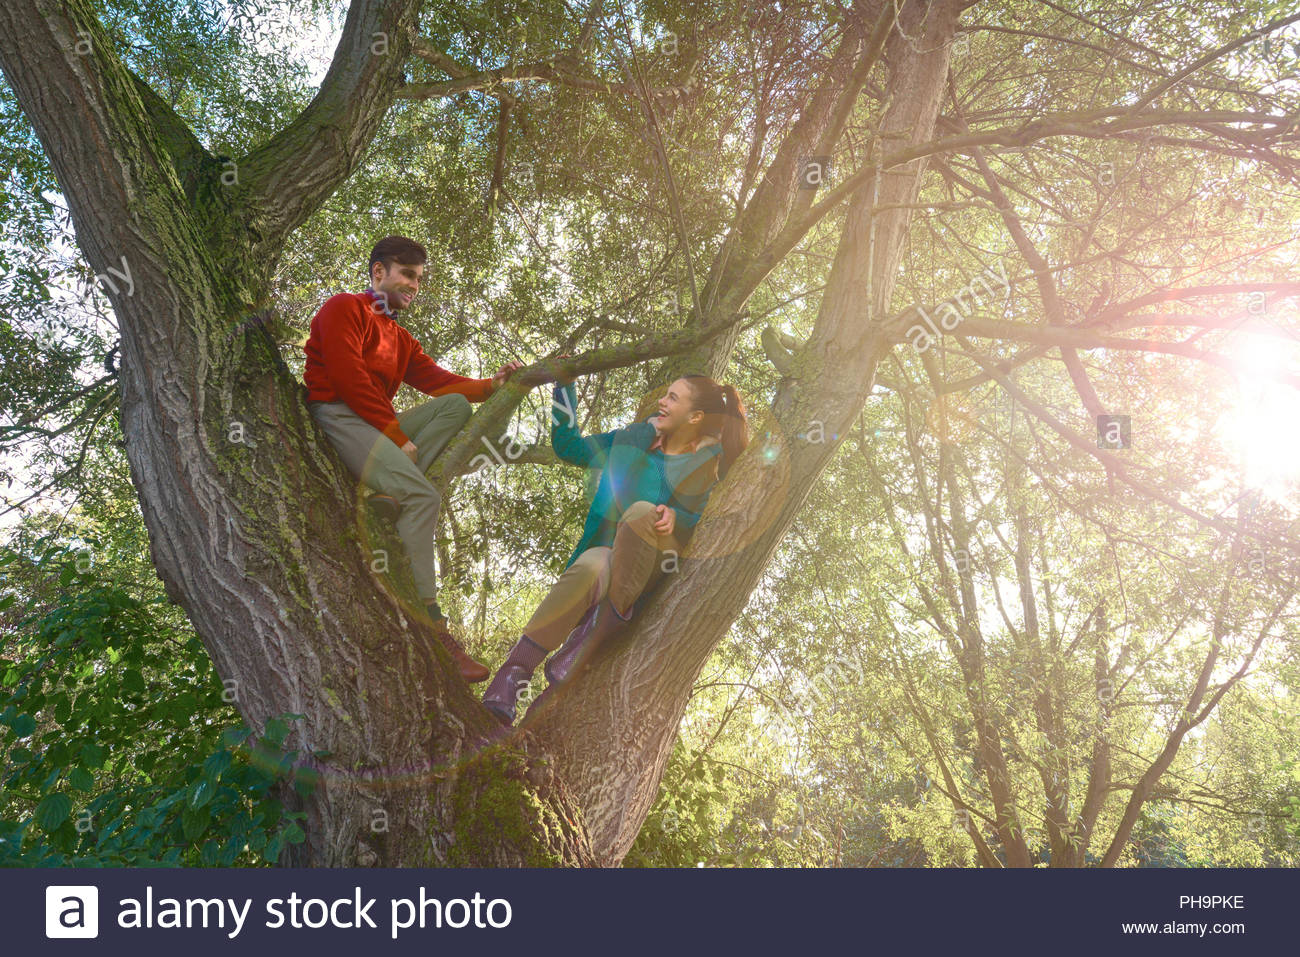 Young couple climbing tree together. - Stock Image